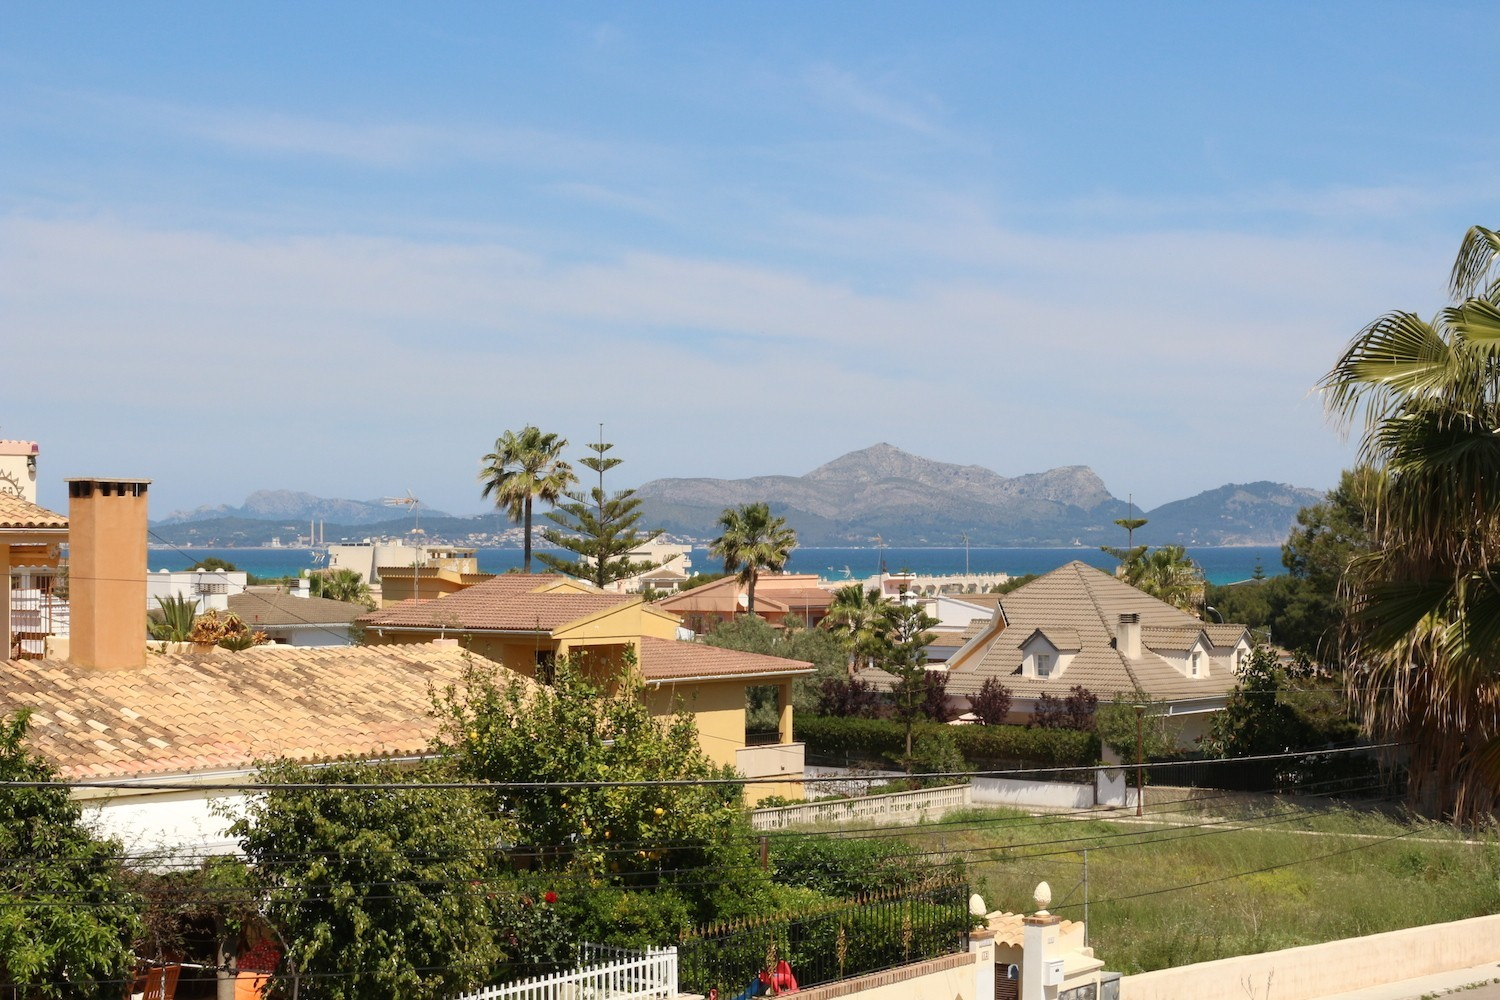 3 double bedrooms, 2 bathrooms, terraces, barbecue and free Wifi internet, in only 600m on the beach